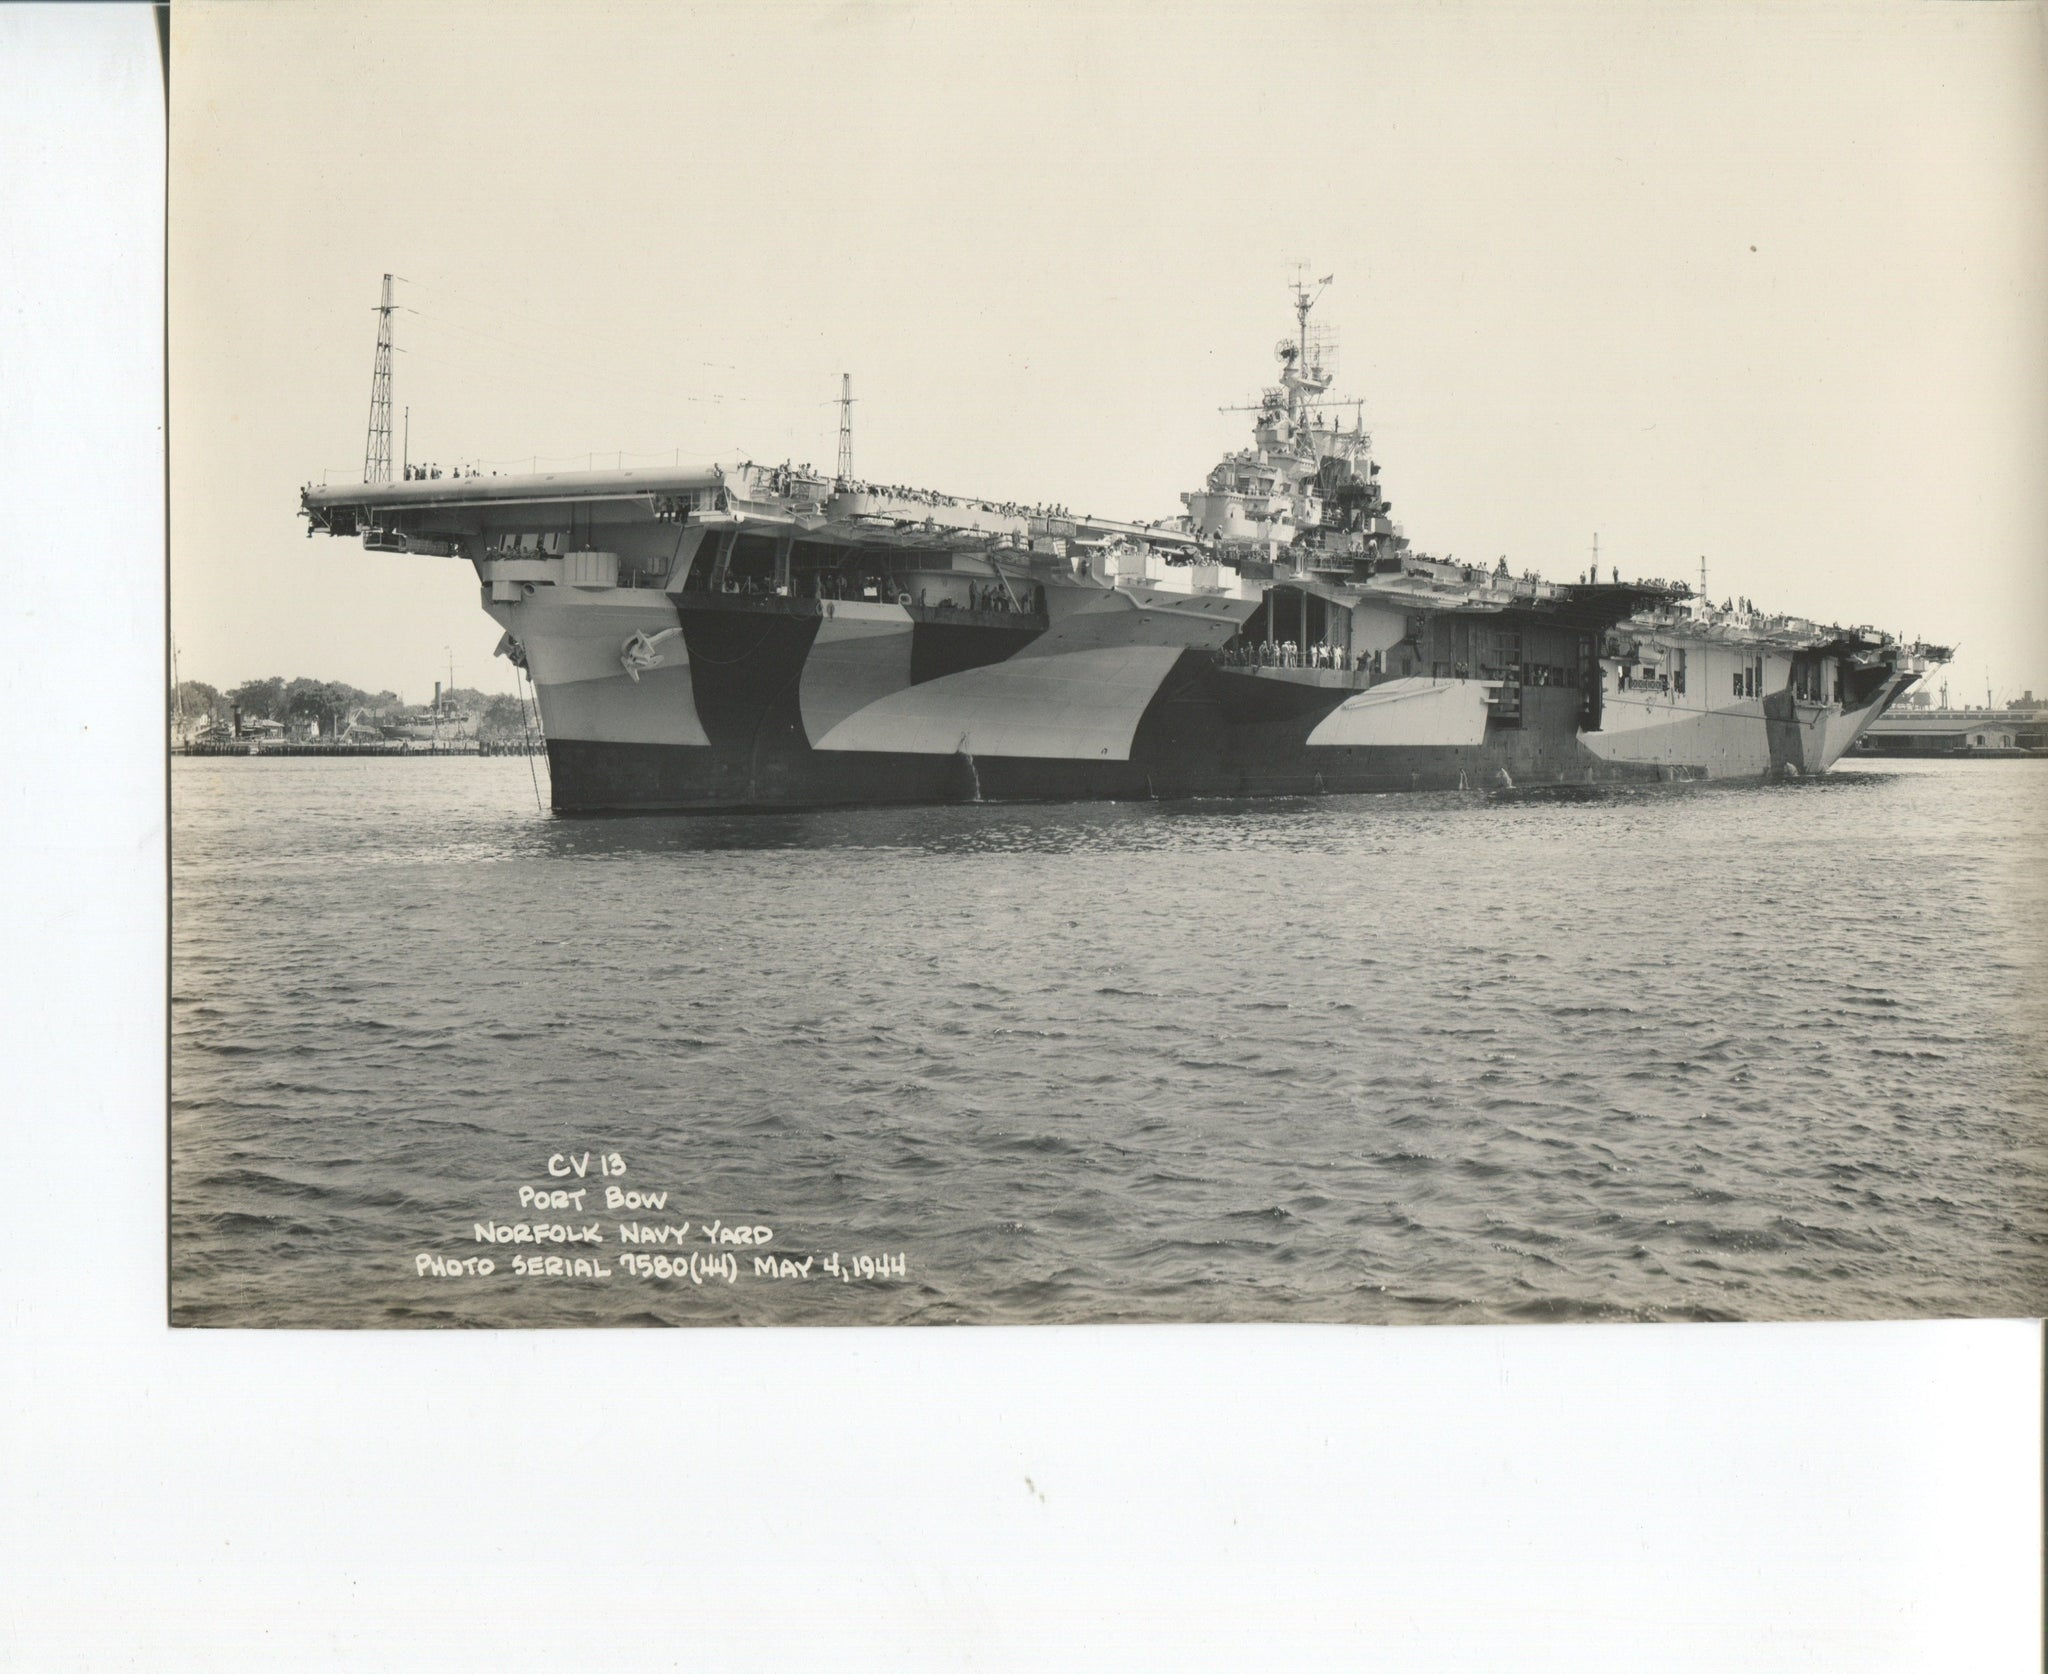 Official Navy Photo of WWII era USS Franklin (CV-13) Aircraft Carrier - Annapolis Maritime Antiques